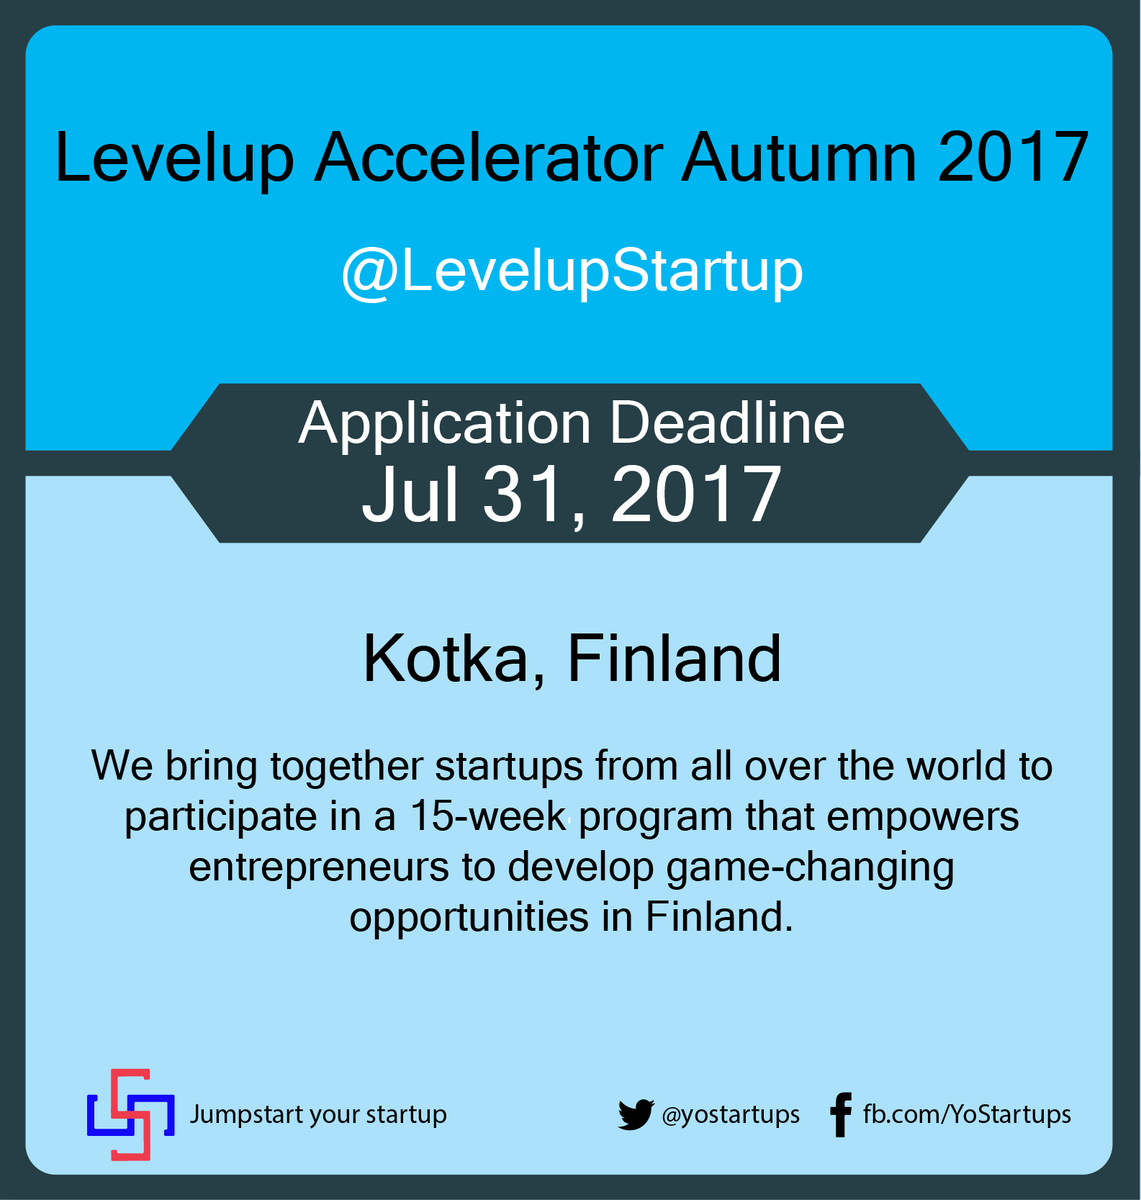 Checkout @LevelupStartup Dynamic, empowering &amp; flexible #startup #accelerator program based in #Finland #YoStartups  https:// goo.gl/md6Kam  &nbsp;  <br>http://pic.twitter.com/lWpCqp4ZBw